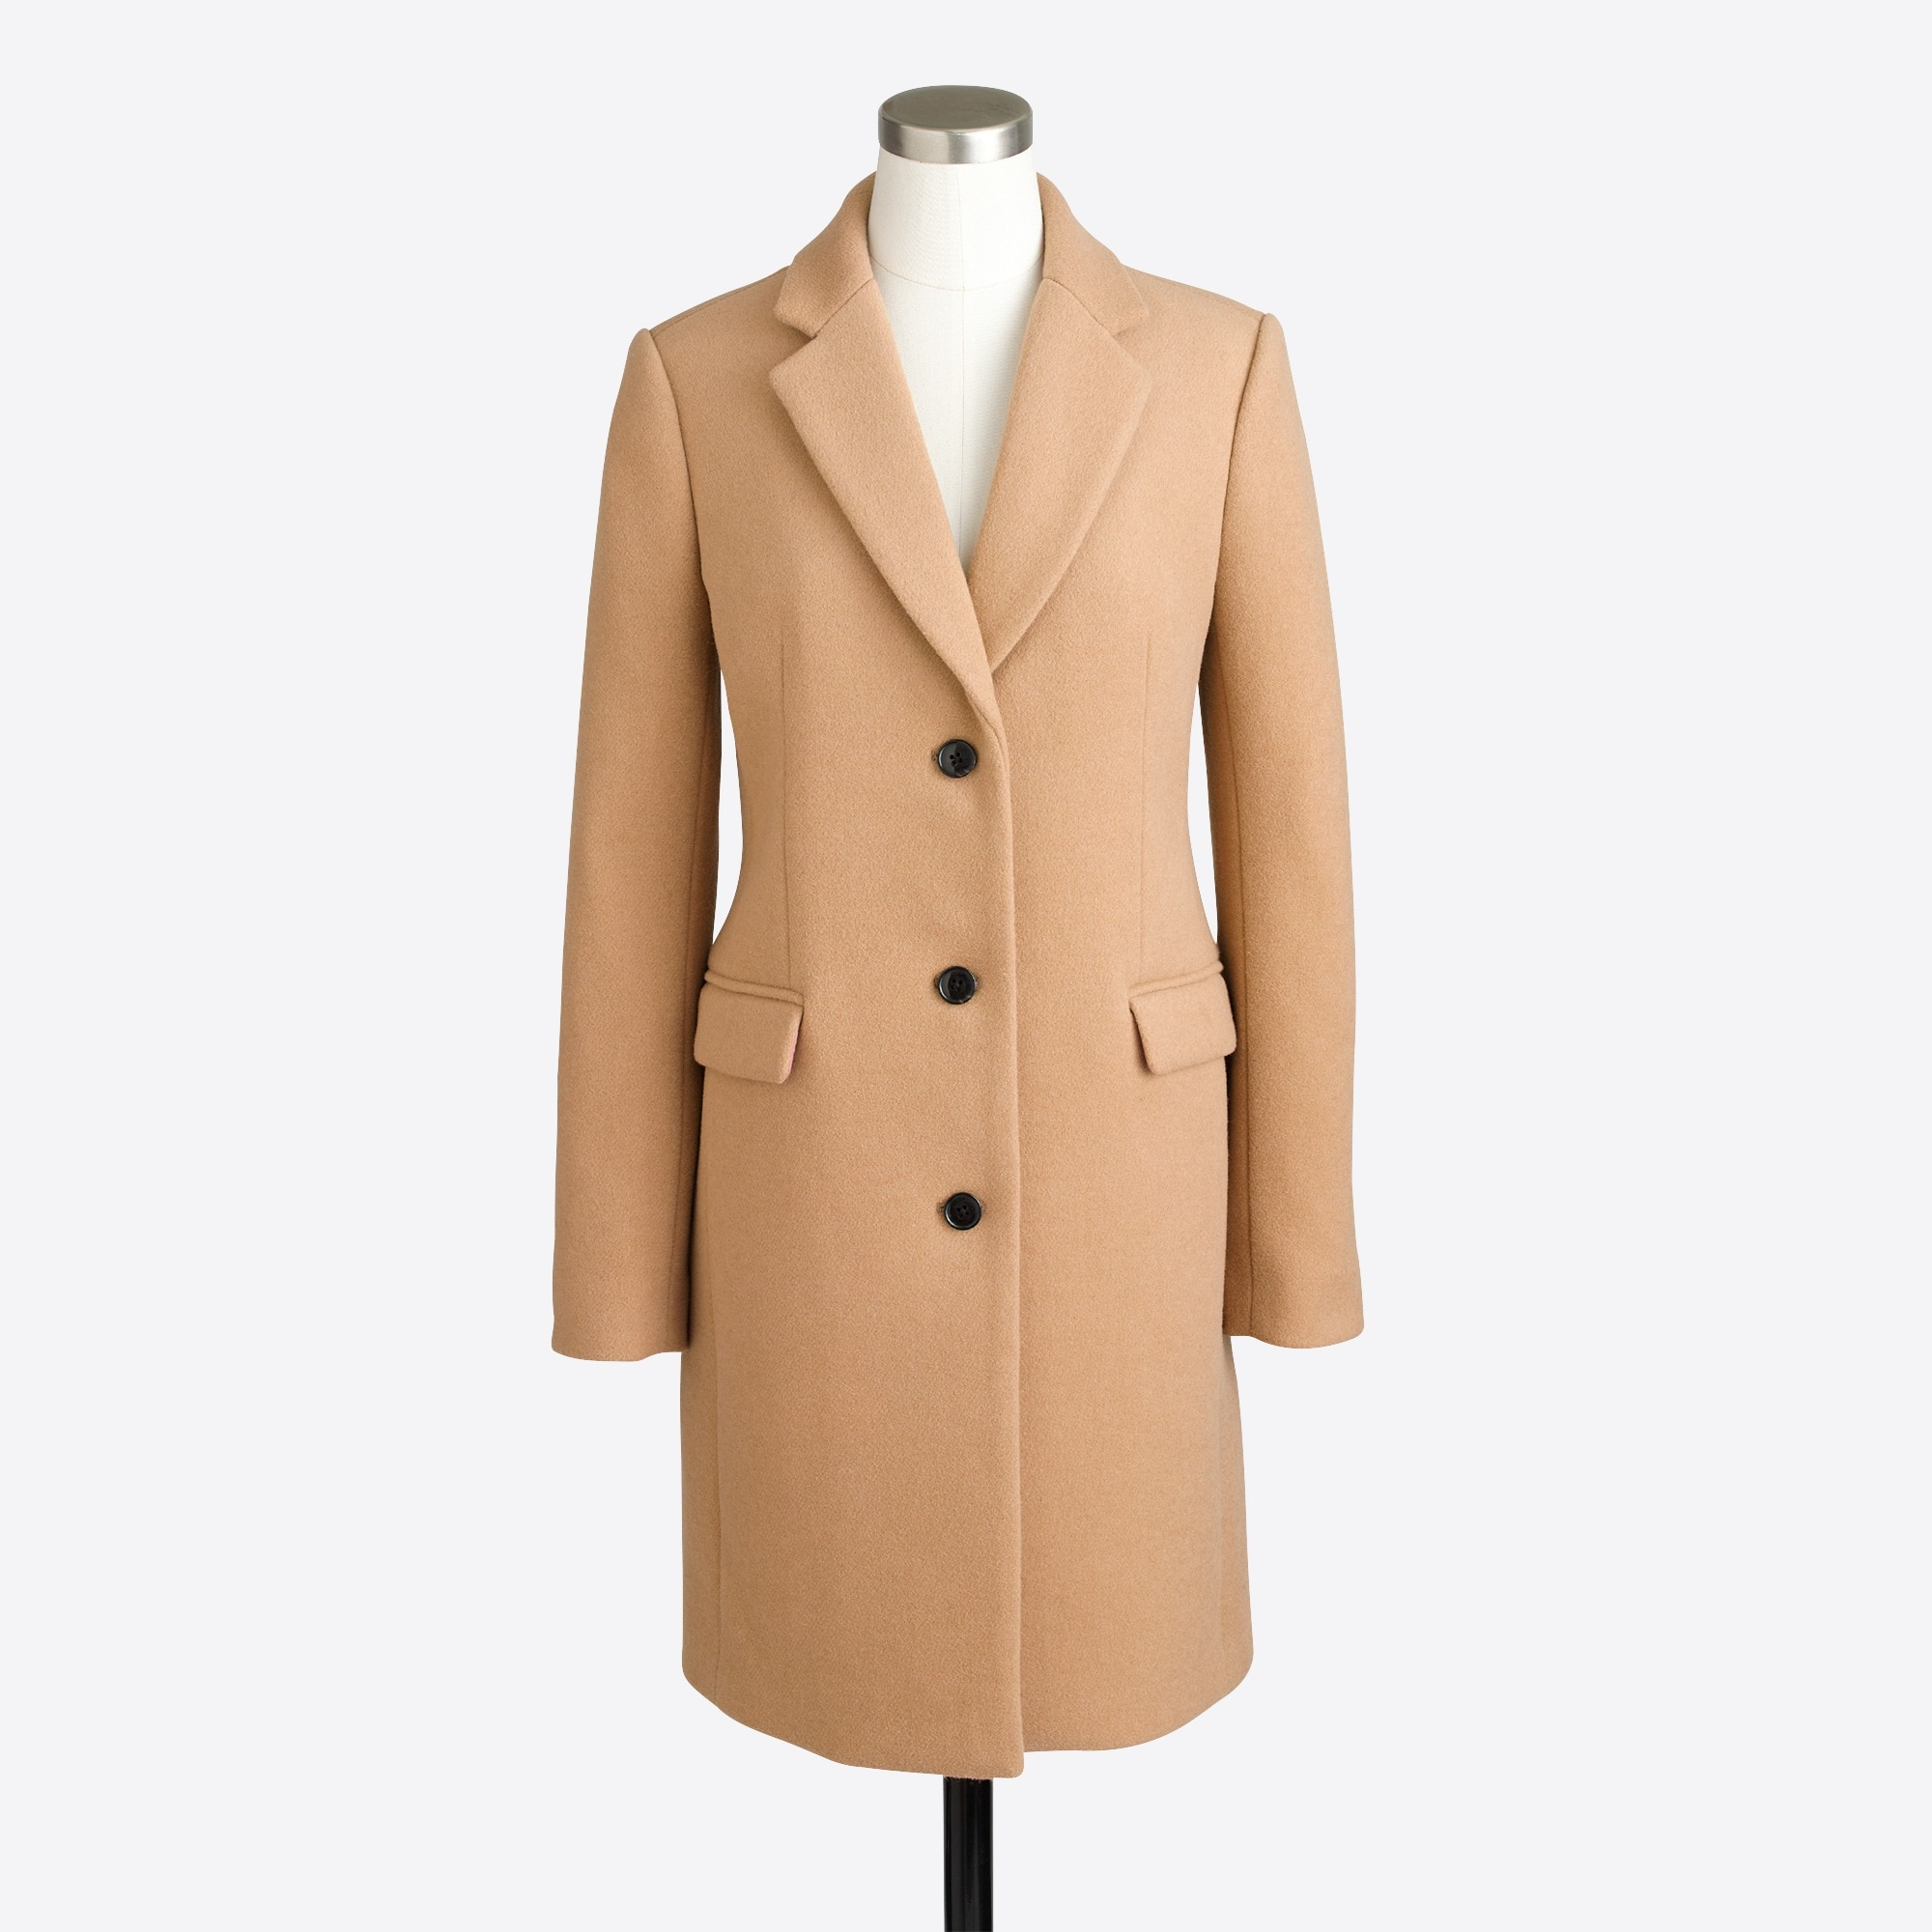 Image 2 for Wool topcoat